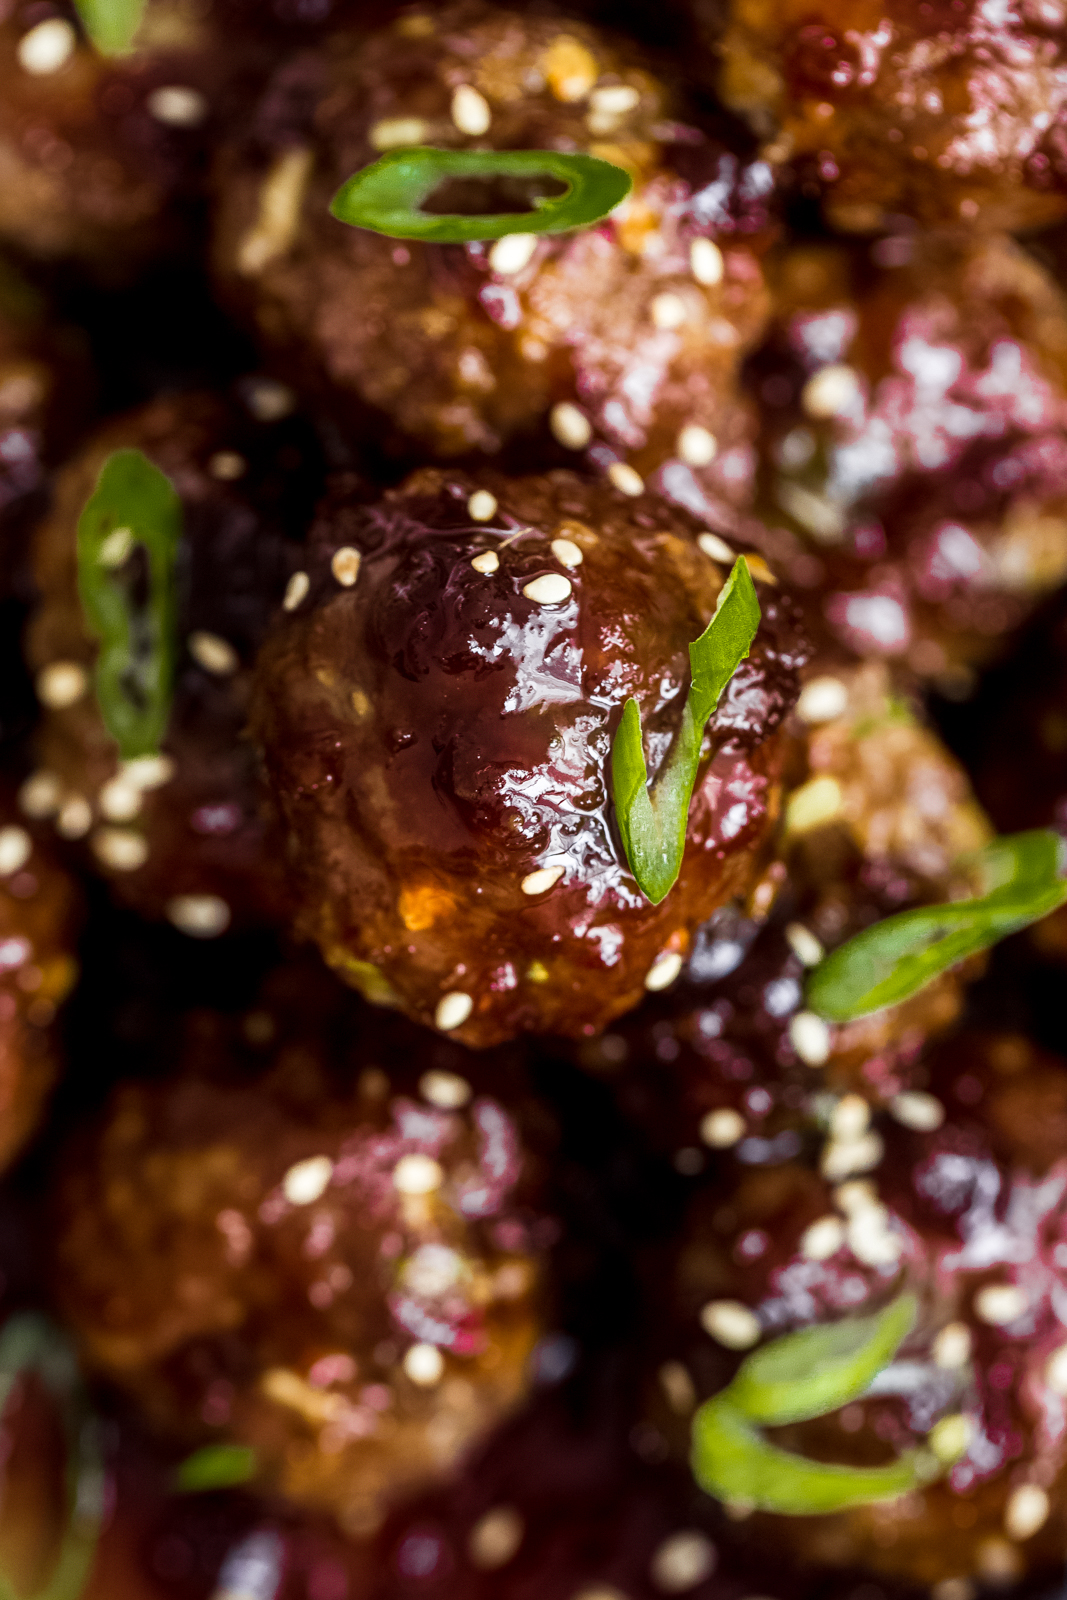 sticky sauce on beef meatballs topped with scallions and sesame seeds